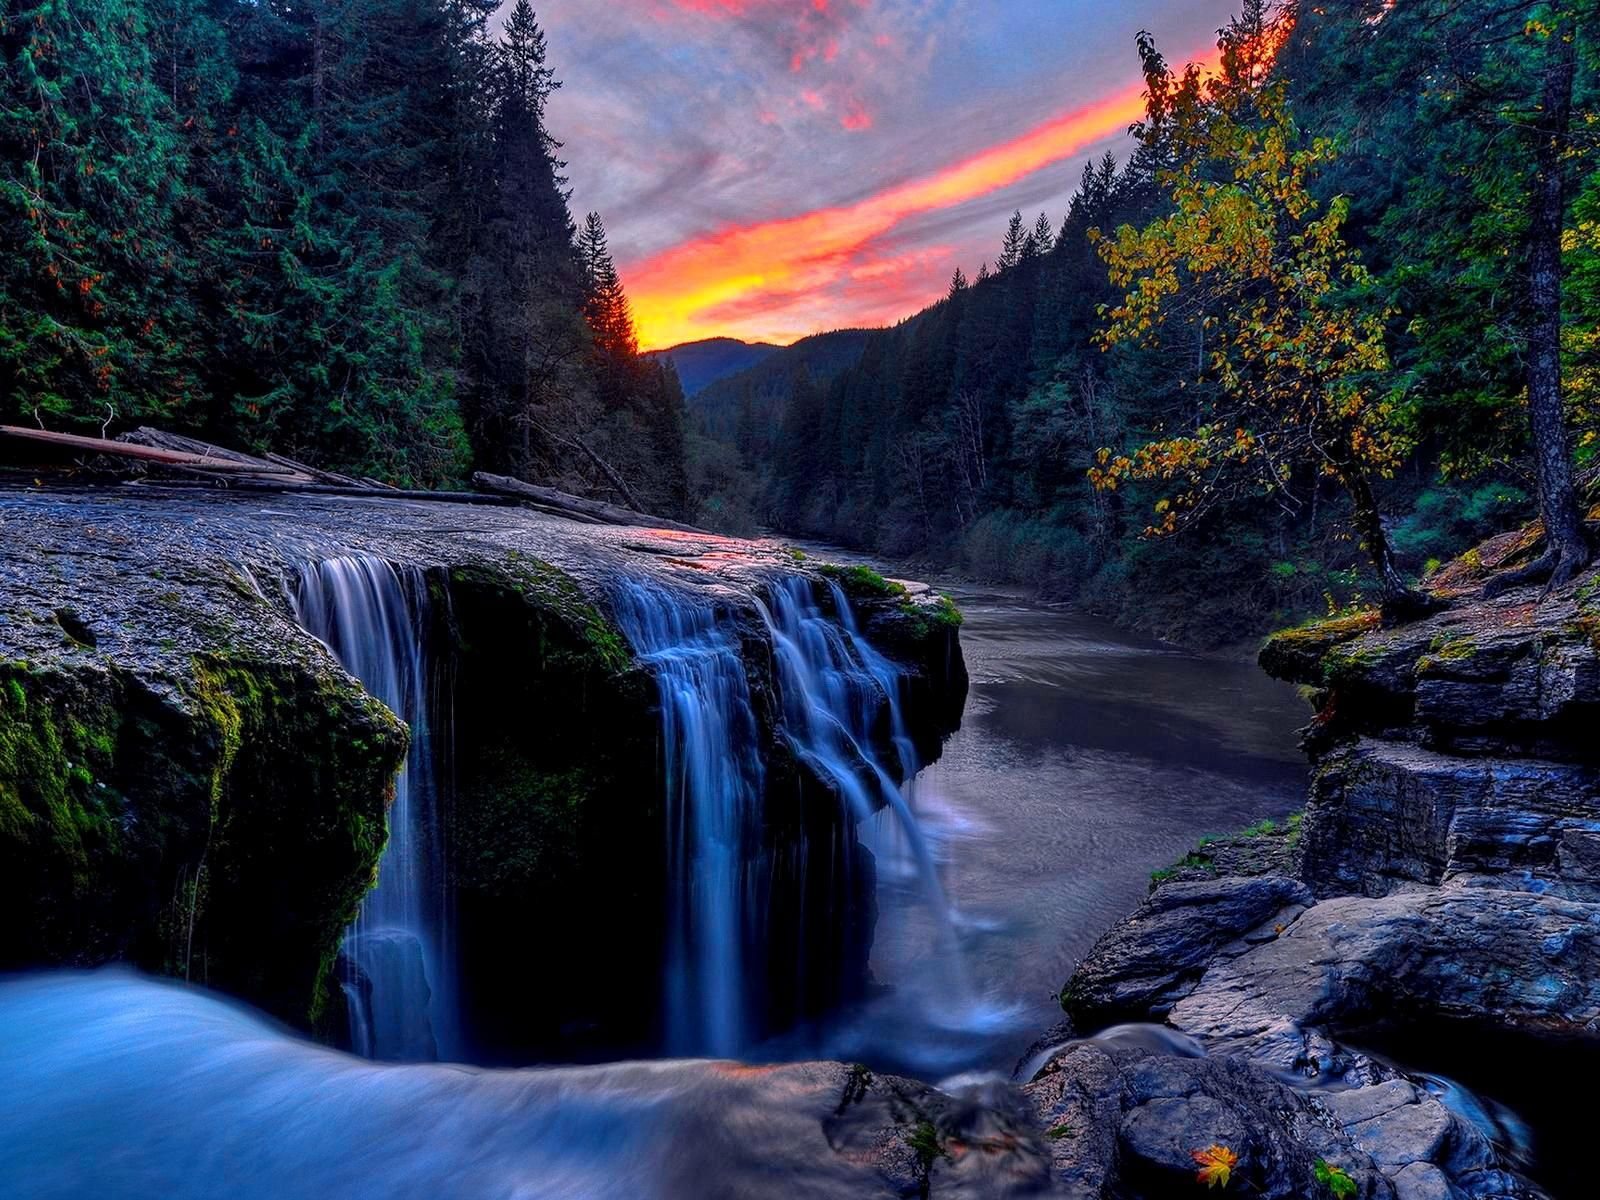 Mountain Waterfall Wallpaper 54538 Hd Wallpapers Desktopinhq Waterfall Wallpaper Waterfall Computer Wallpaper Hd